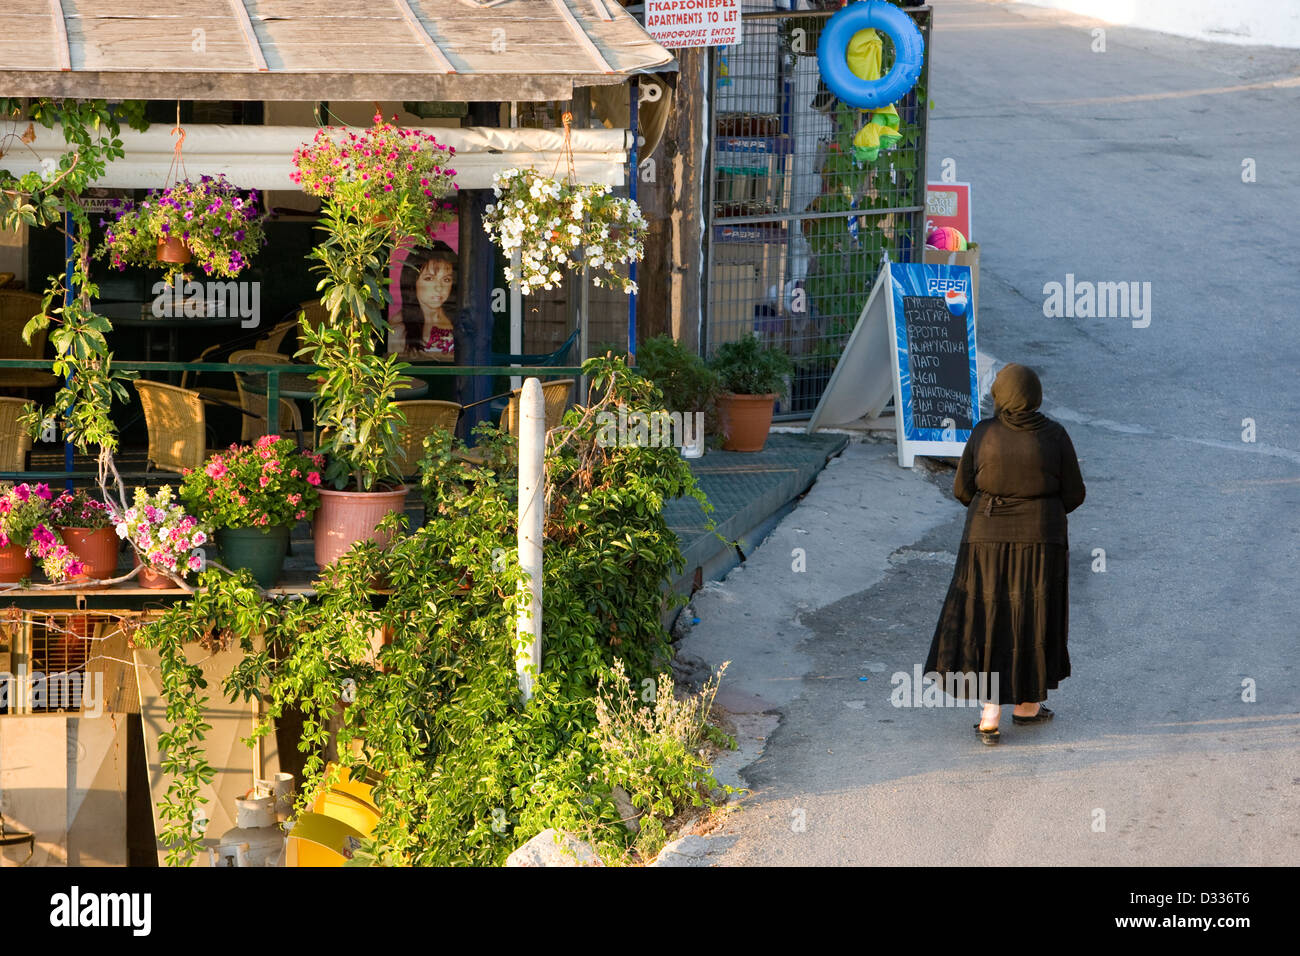 A black-dressed woman in the village of Athani; Lefkada, Ionian islands. Greece. - Stock Image